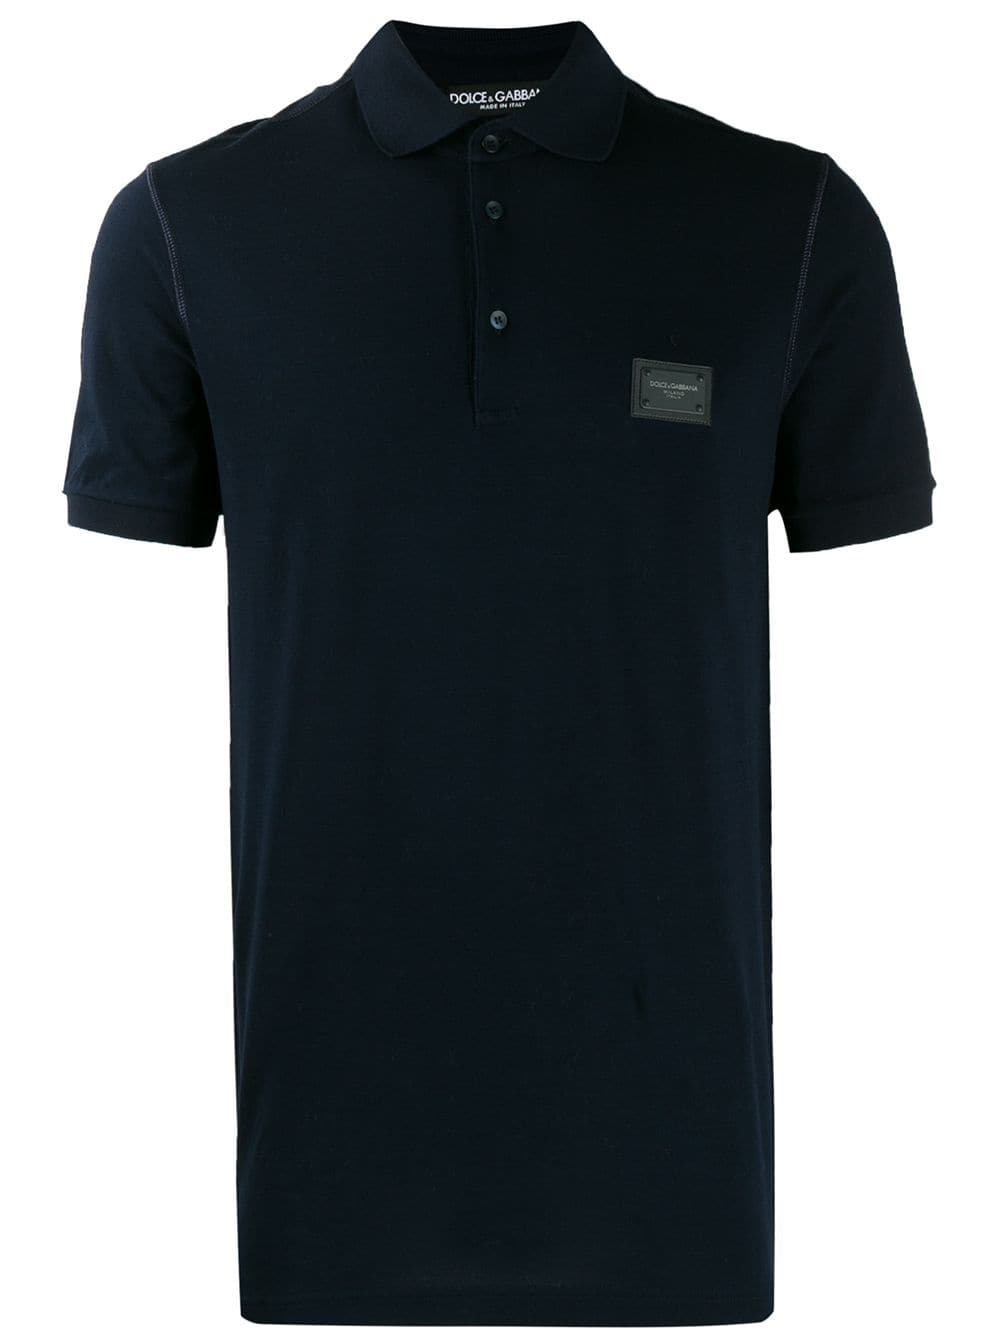 ce1116d4f61 Dolce & Gabbana logo patch polo shirt - Blue in 2019 | Products ...